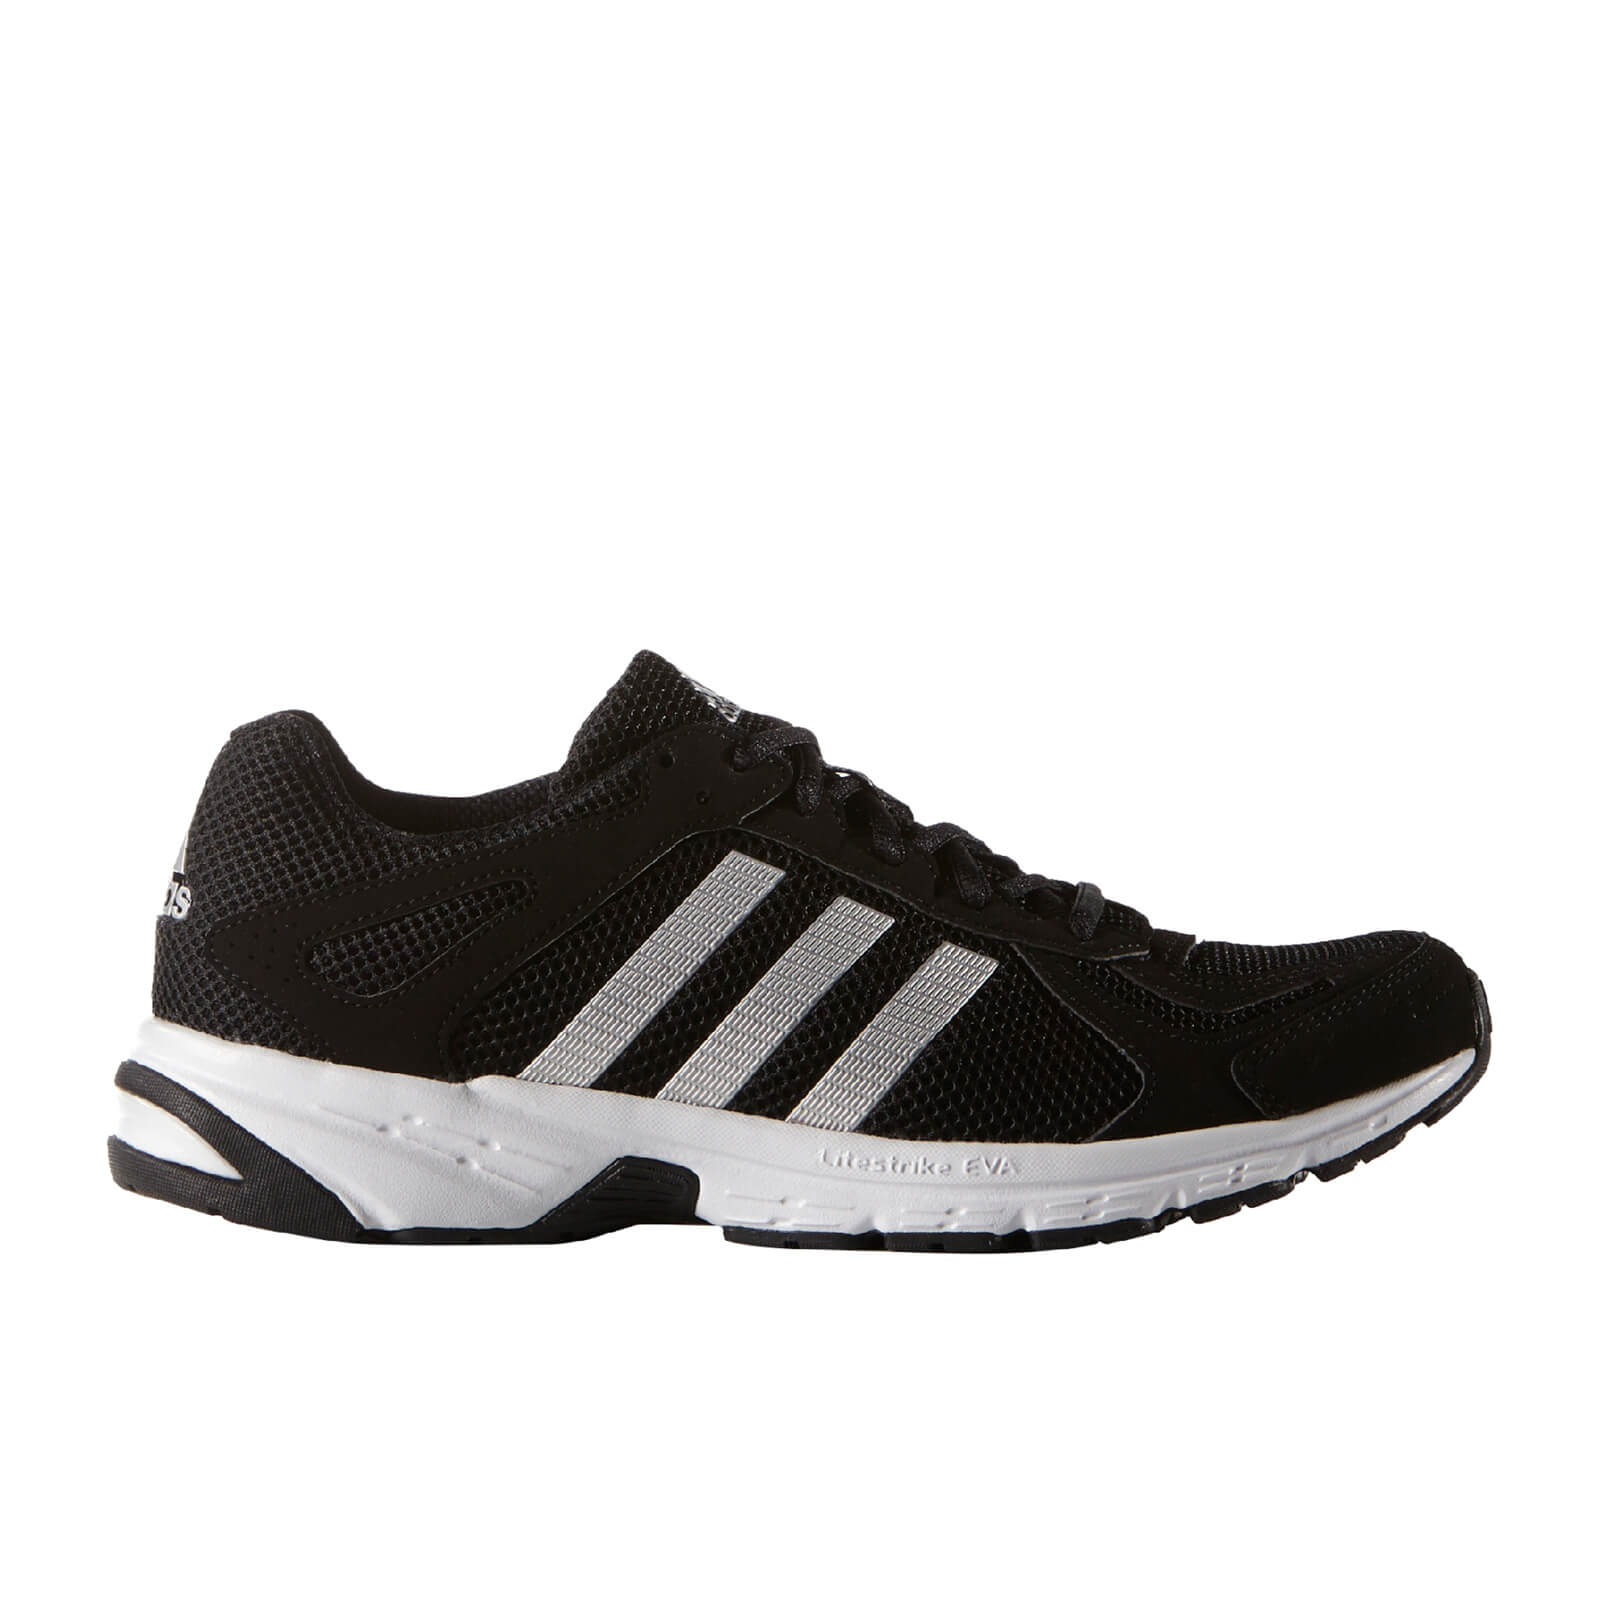 6b01d2072 adidas Men s Duramo 55 Running Shoes - Black Silver